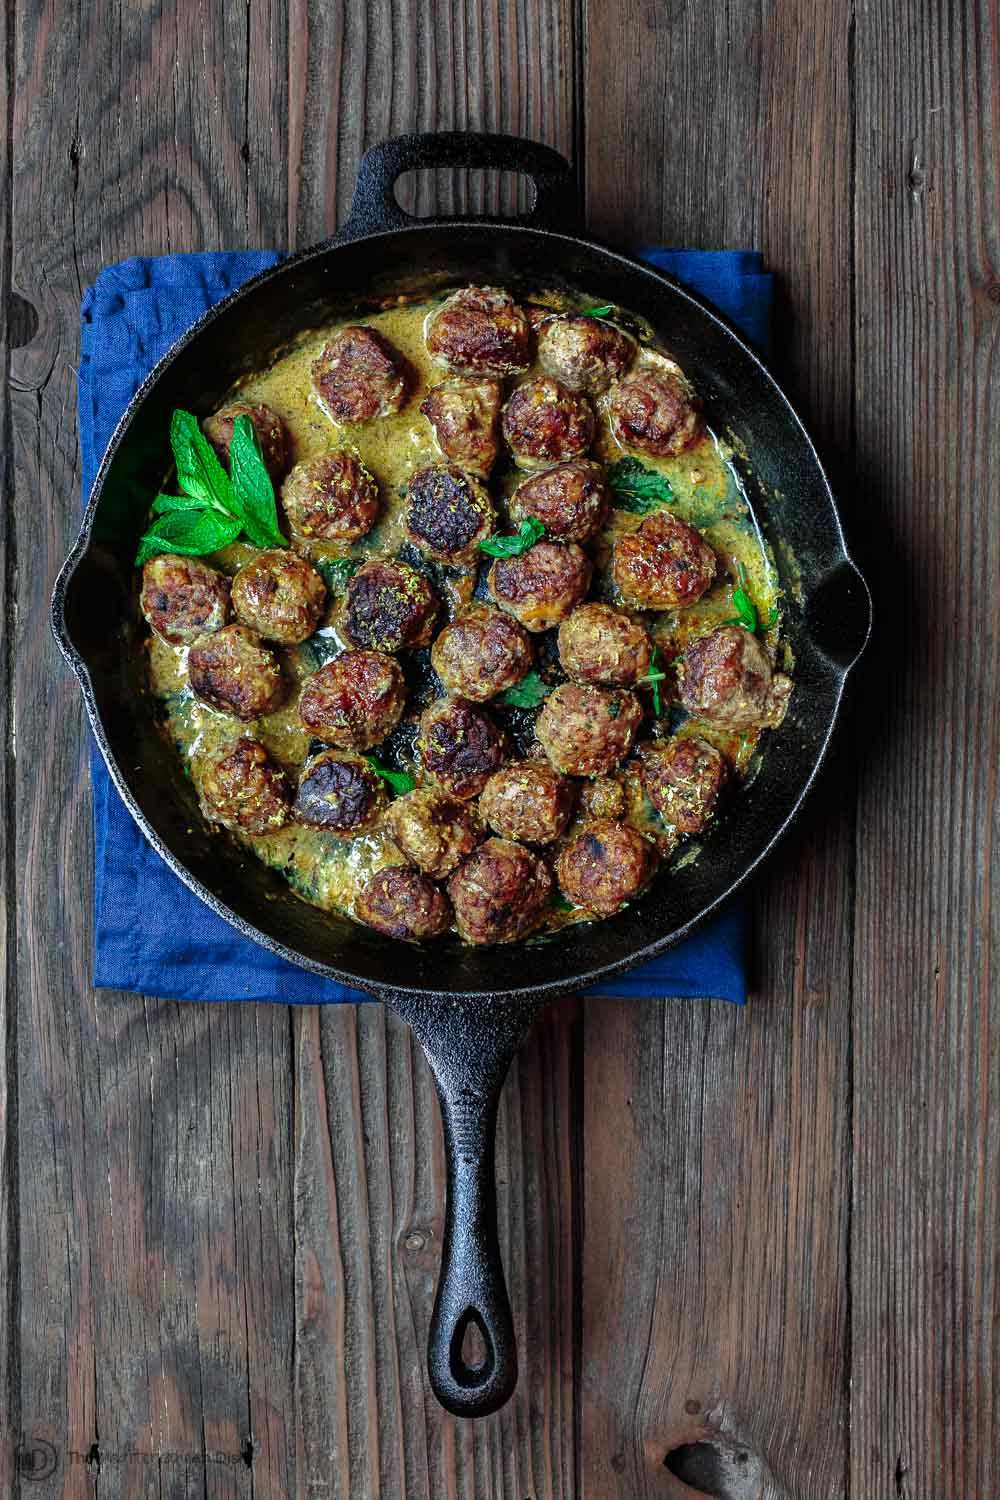 Keftedes greek meatballs recipe part of 21 mediterranean christmas keftedes greek meatballs recipe part of 21 mediterranean christmas brunch recipes the mediterranean dish greek food recipesmeat recipesdinner forumfinder Image collections